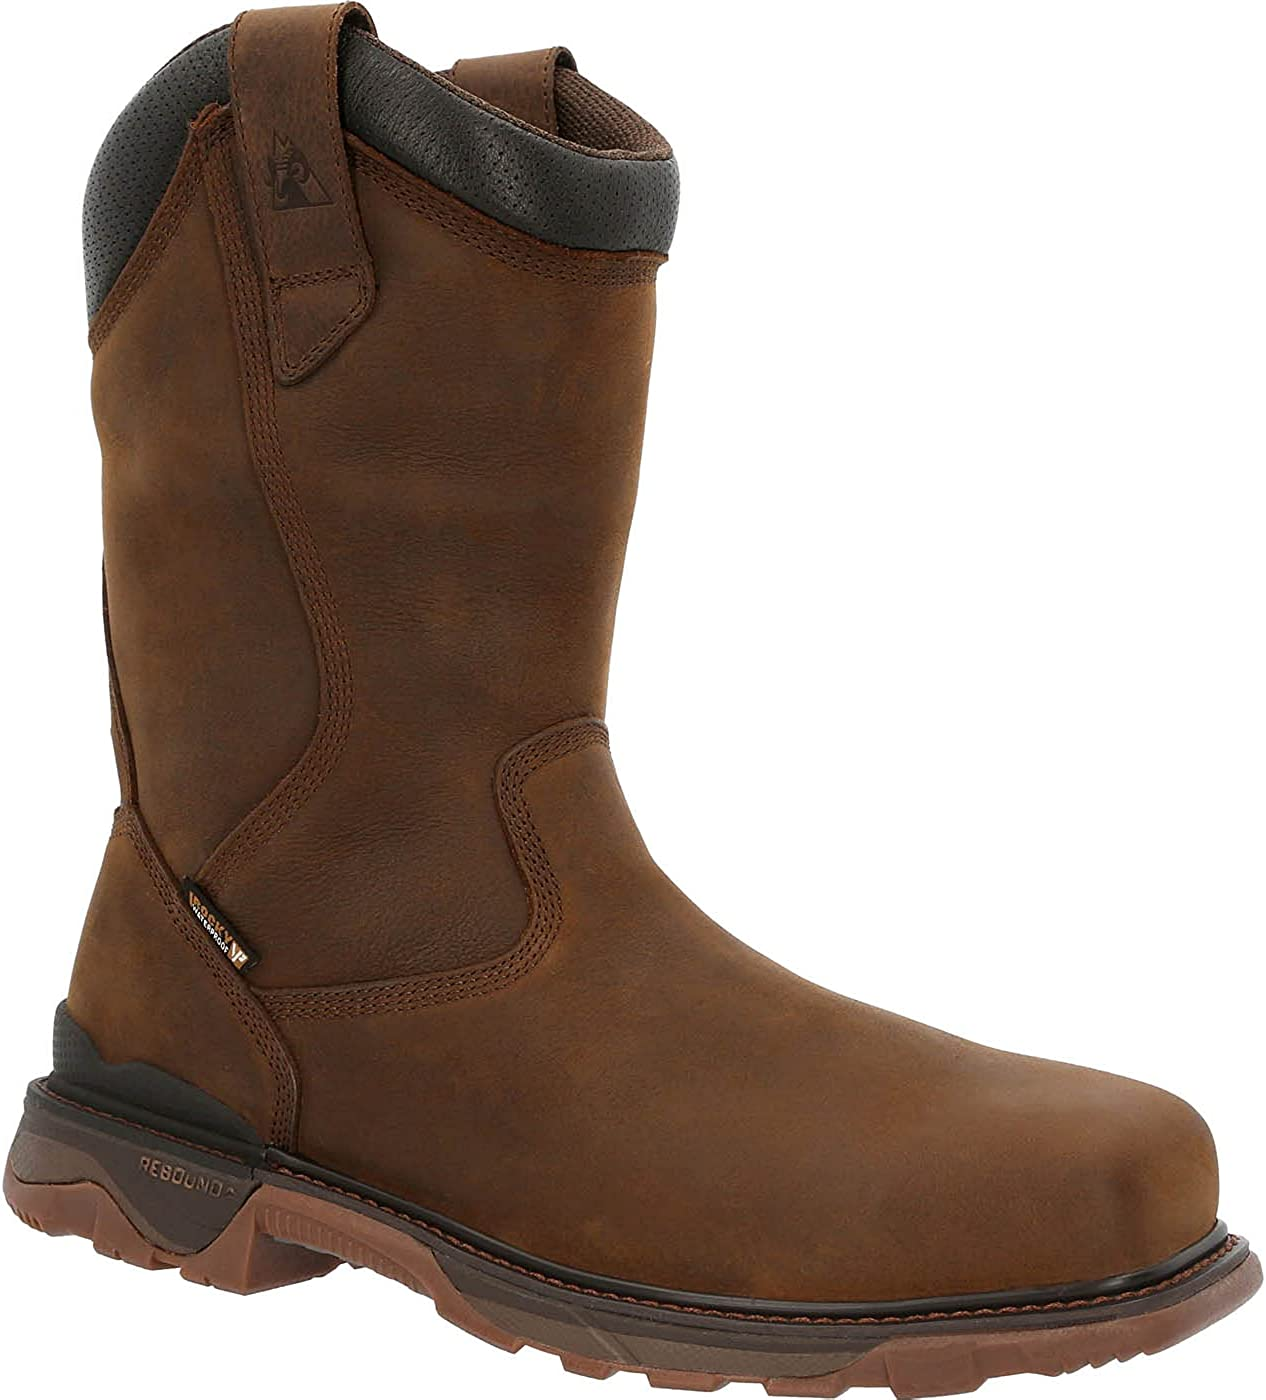 Rocky Carbon 6 Carbon Toe Waterproof Western Work Boot Size 11.5(M)